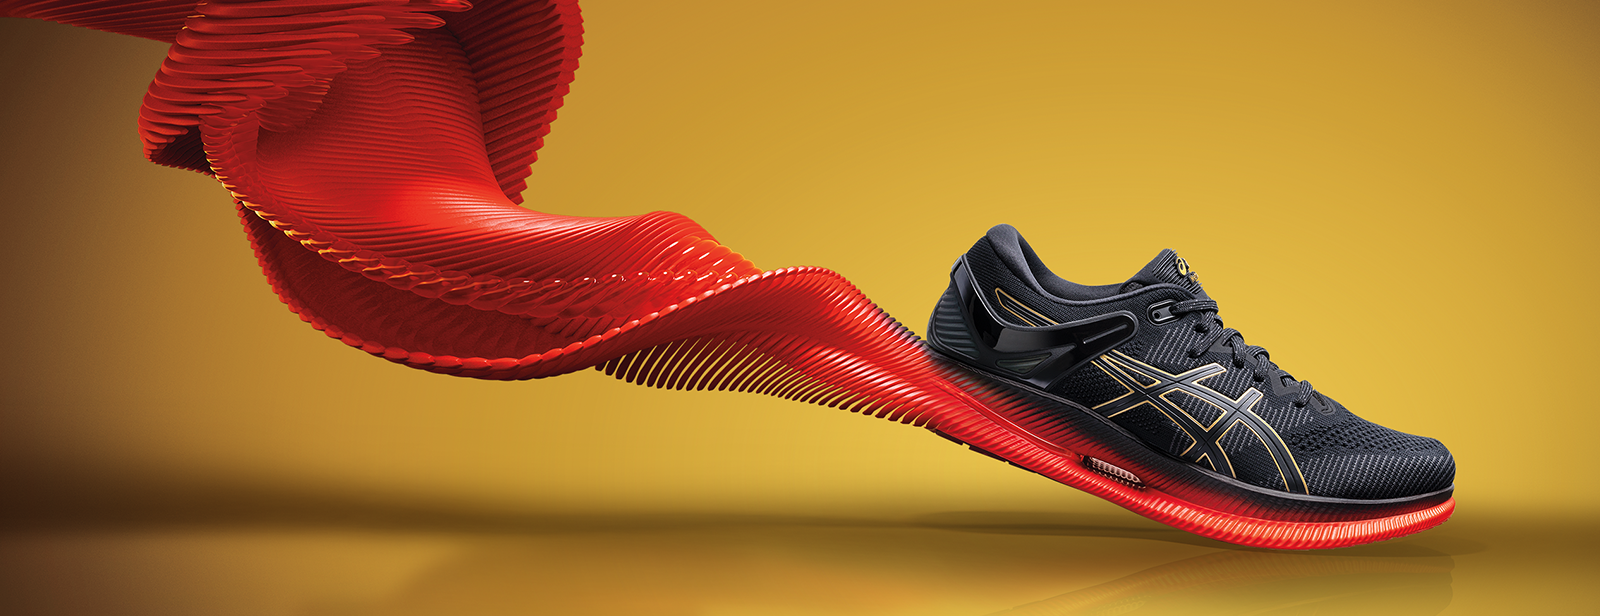 Shop the shoe at a store near you. Find